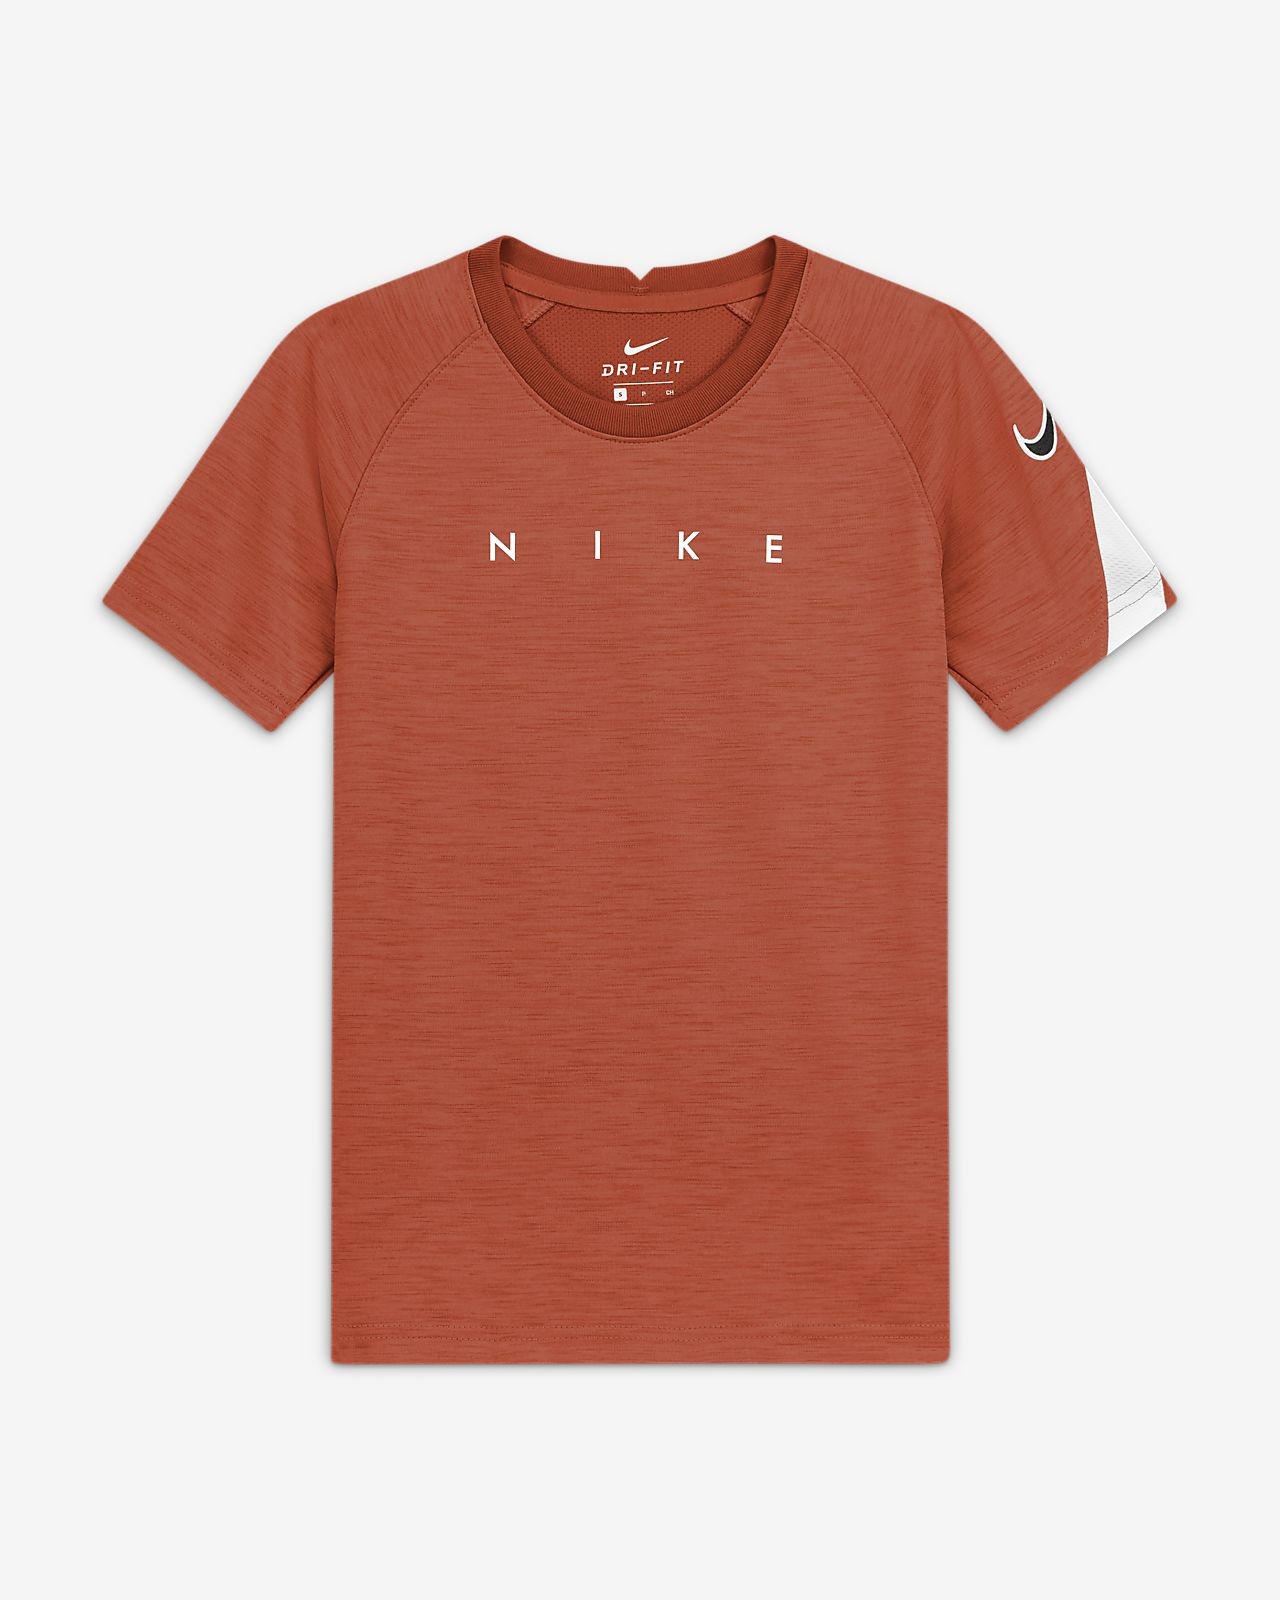 Nike Dri-FIT Academy Older Kids' Short-Sleeve Graphic Football Top